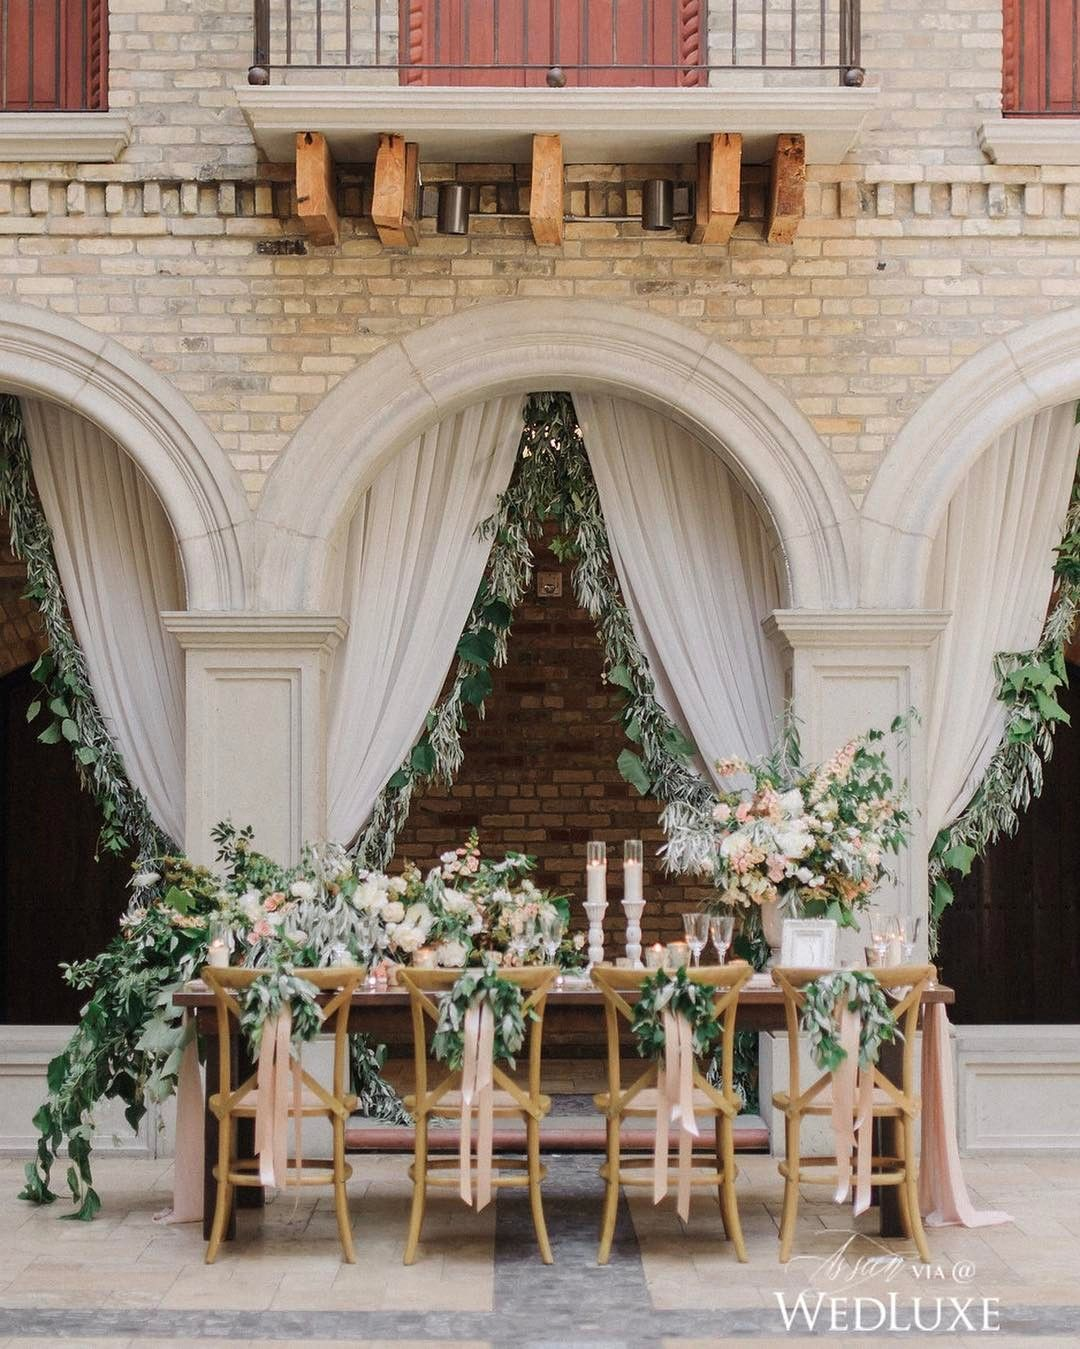 This dreamy outdoor tablescape ladder with